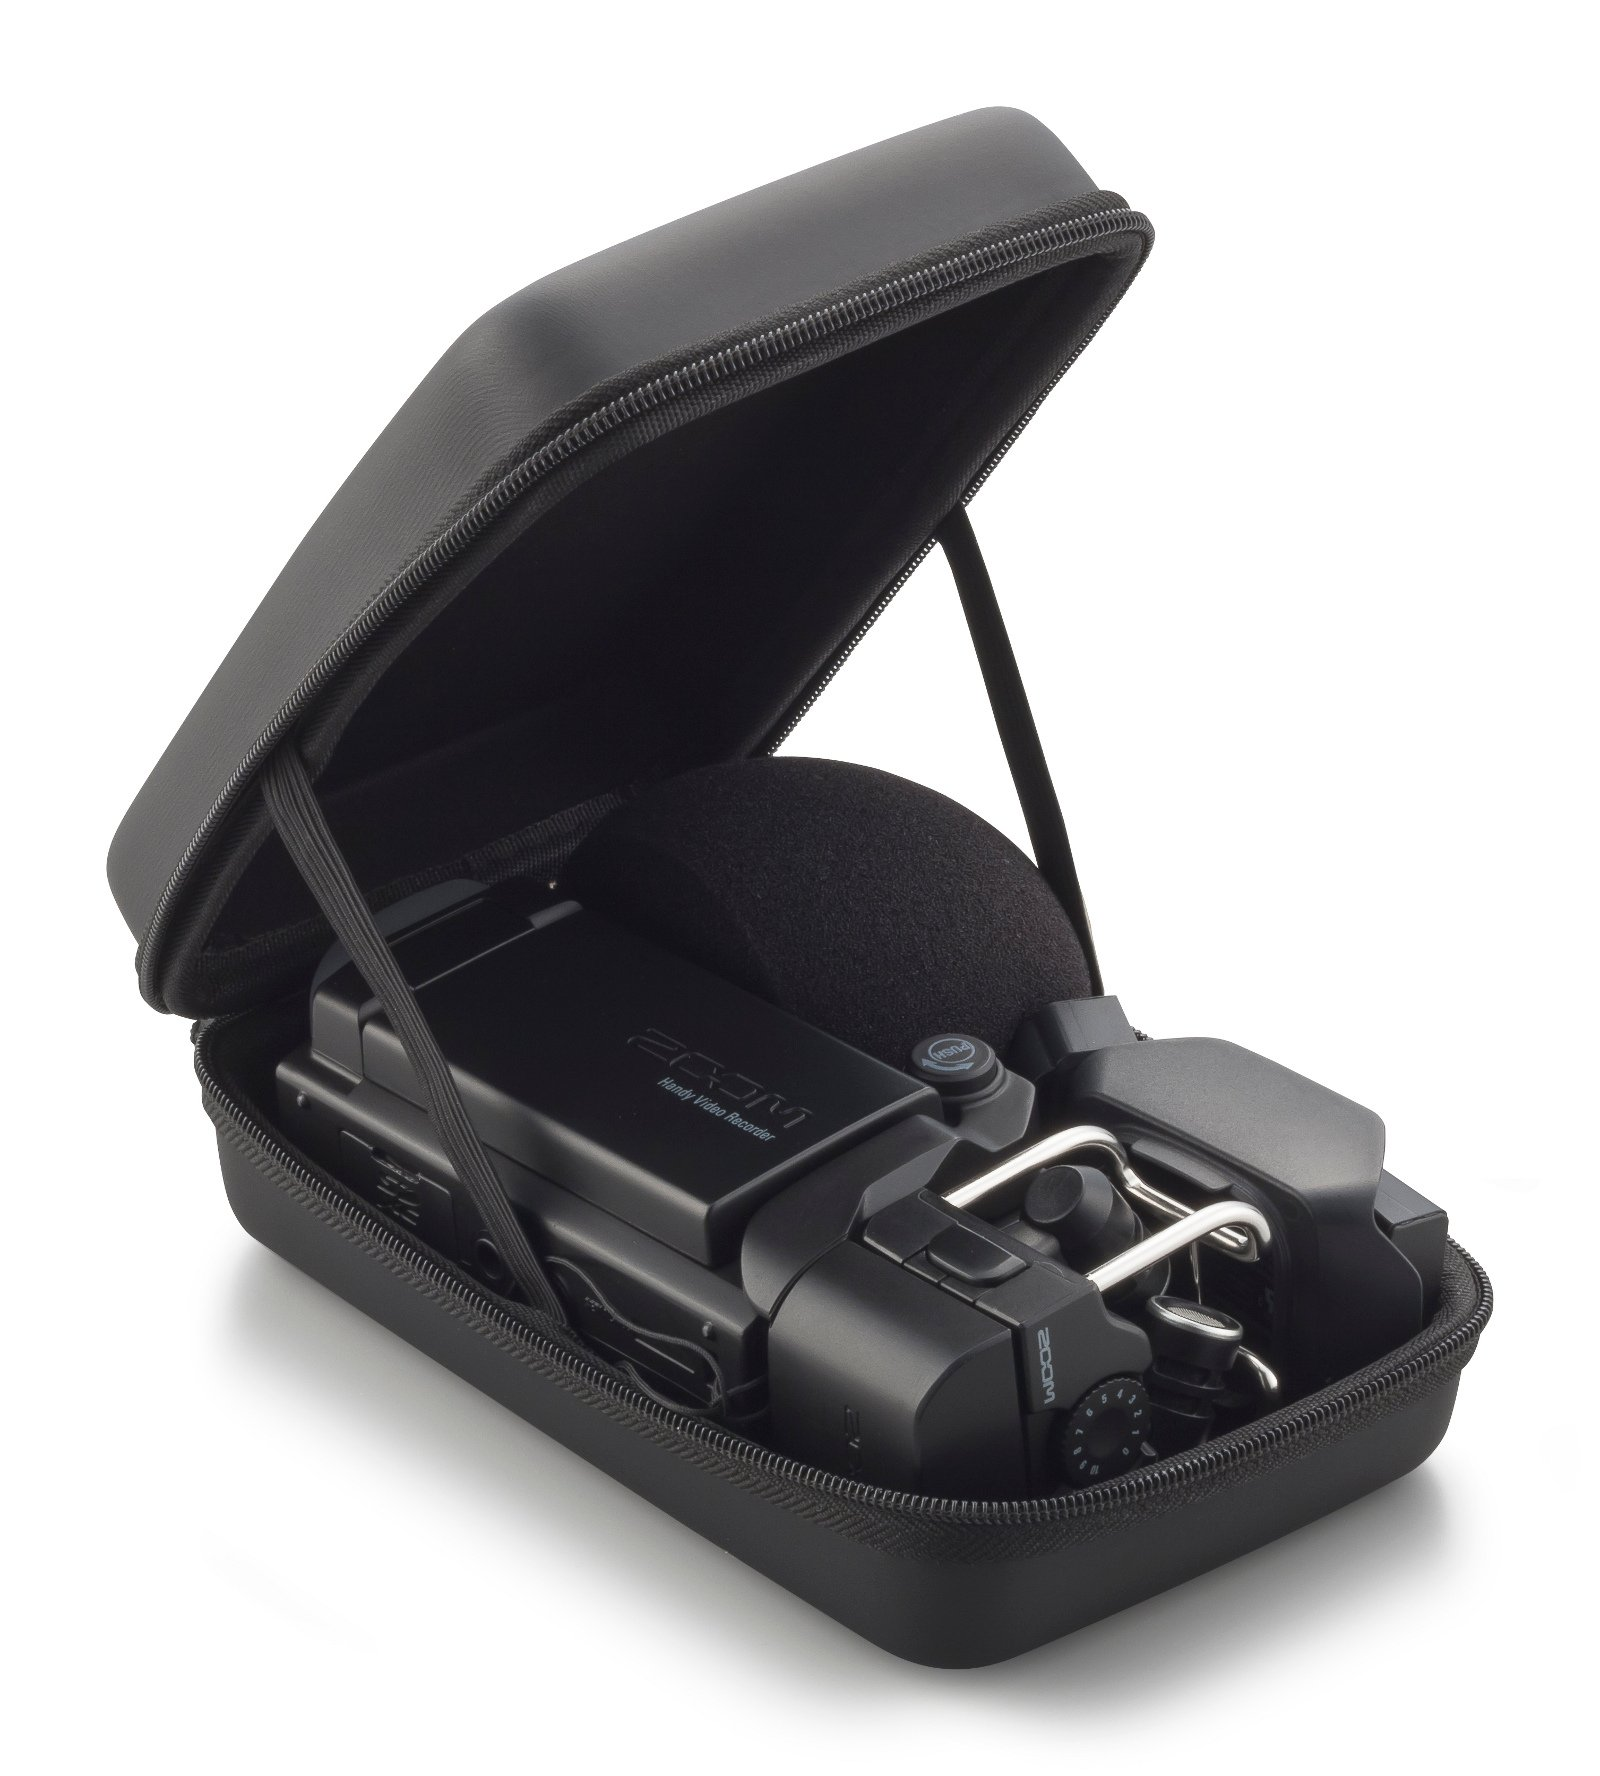 Soft Carrying Case for Q8 Video Recorder